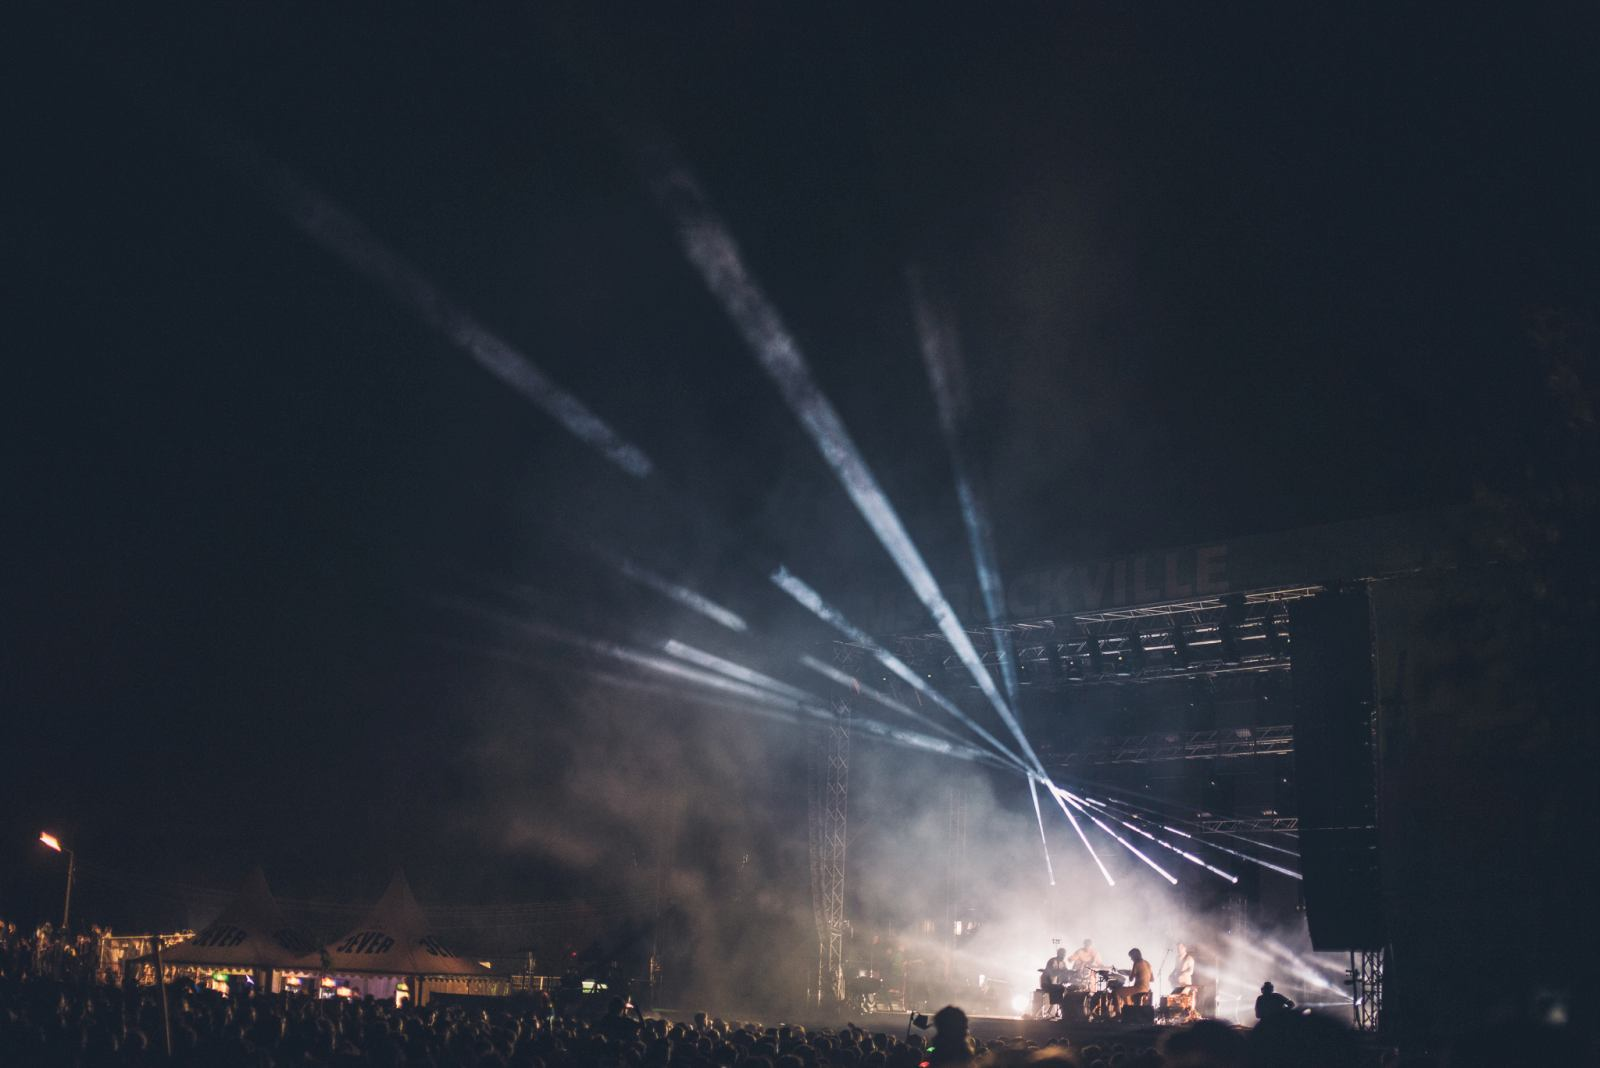 031 ms dockville 2015 caribou - MS Dockville 2015